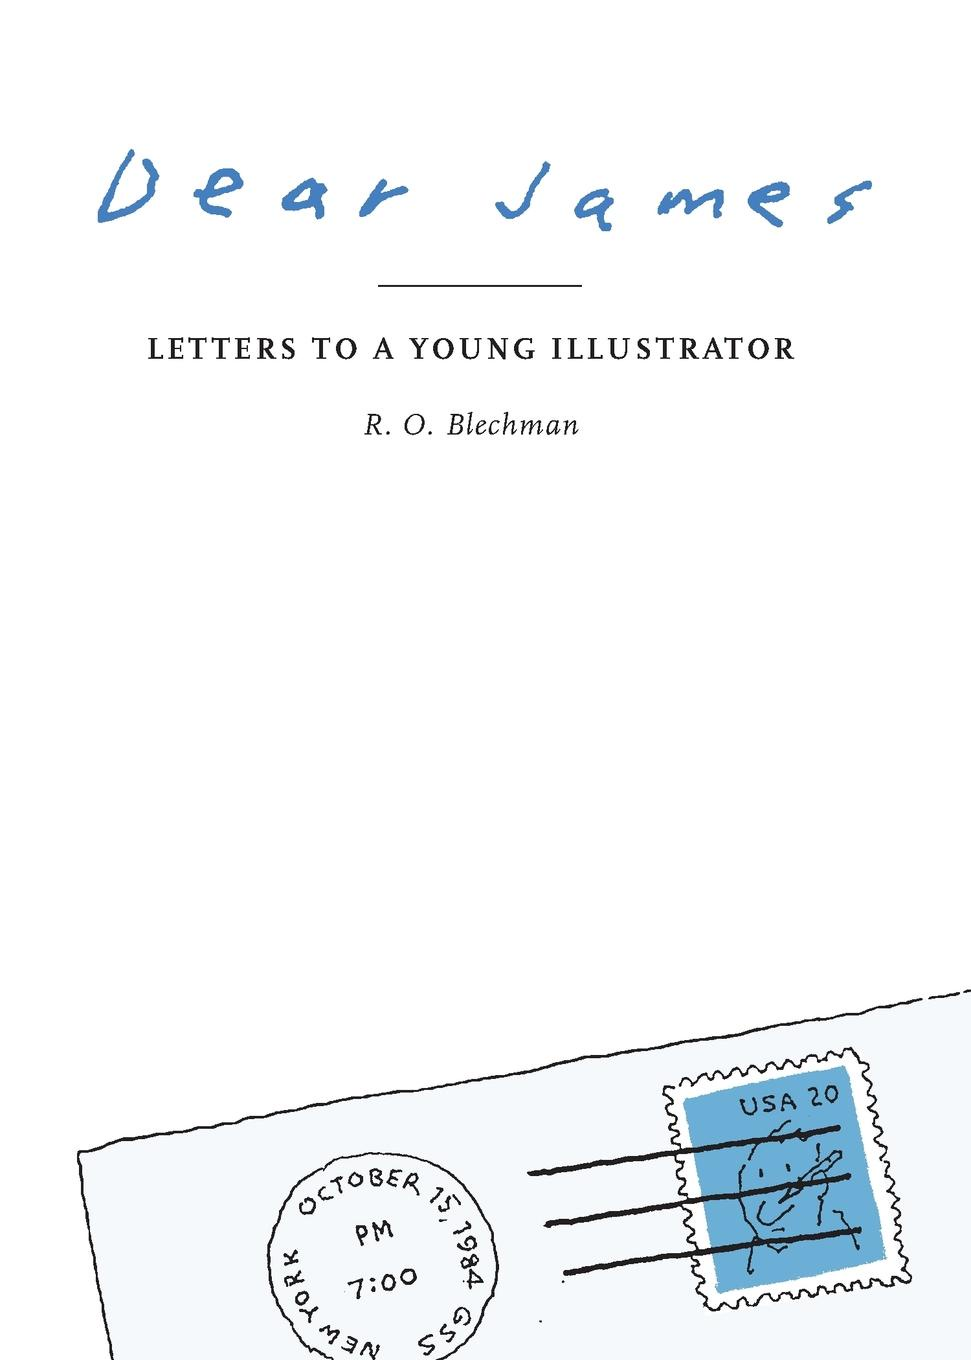 R. O. BLECHMAN DEAR JAMES